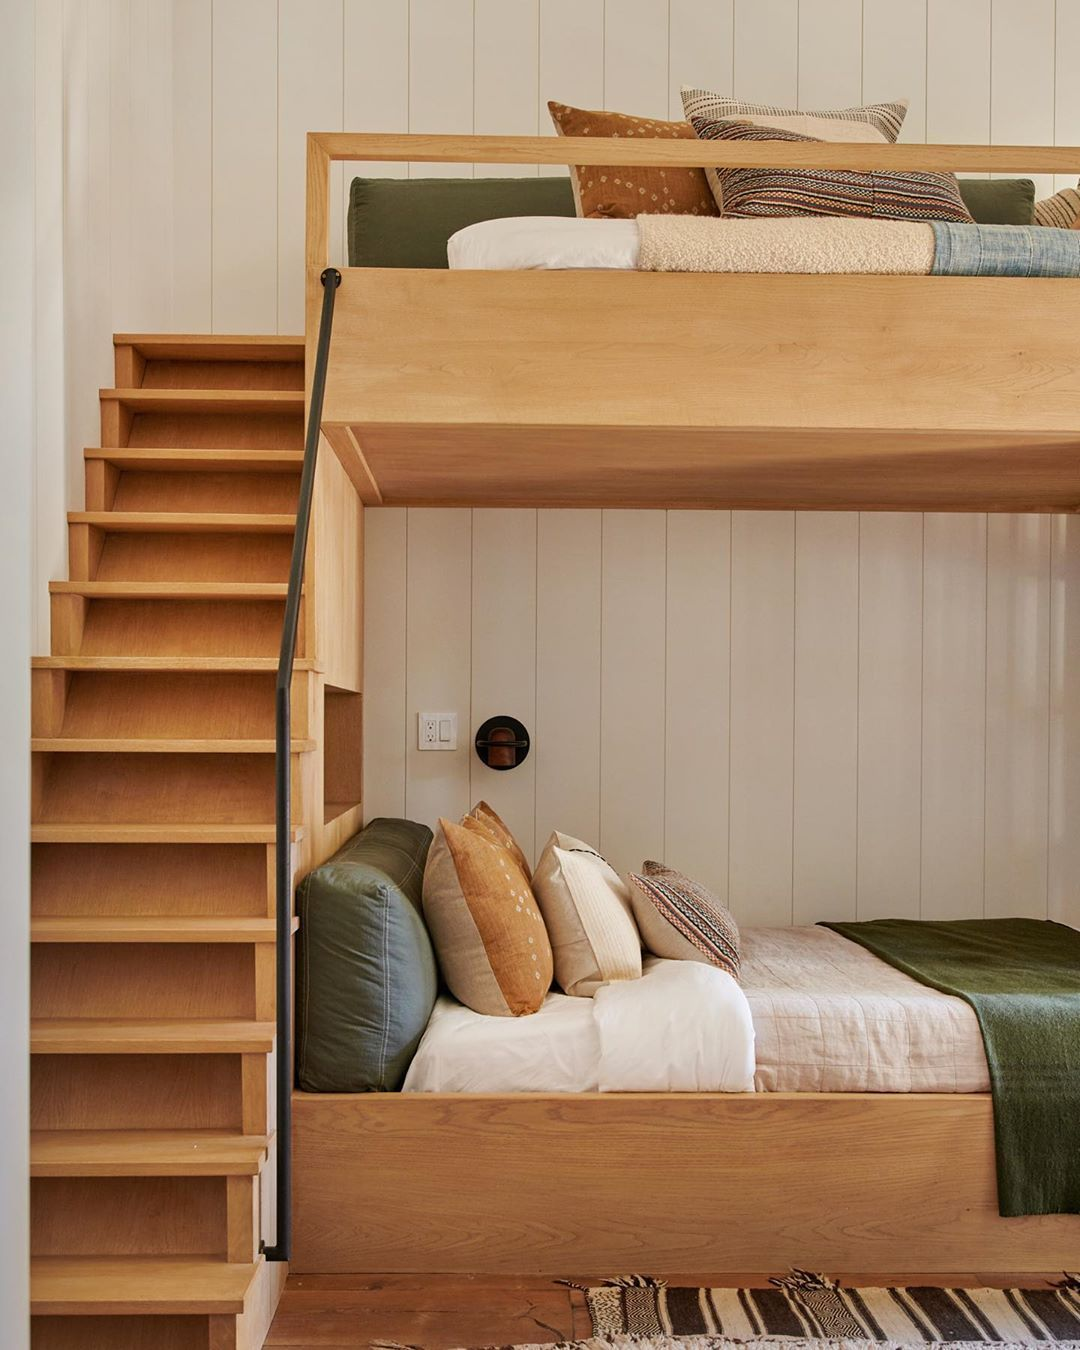 Brady Tolbert On Instagram At What Age Are You Too Old To Still Want To Sleep In A Bunk Bed This Long Holiday Wee In 2020 Bunk Bed Designs Cheap Home